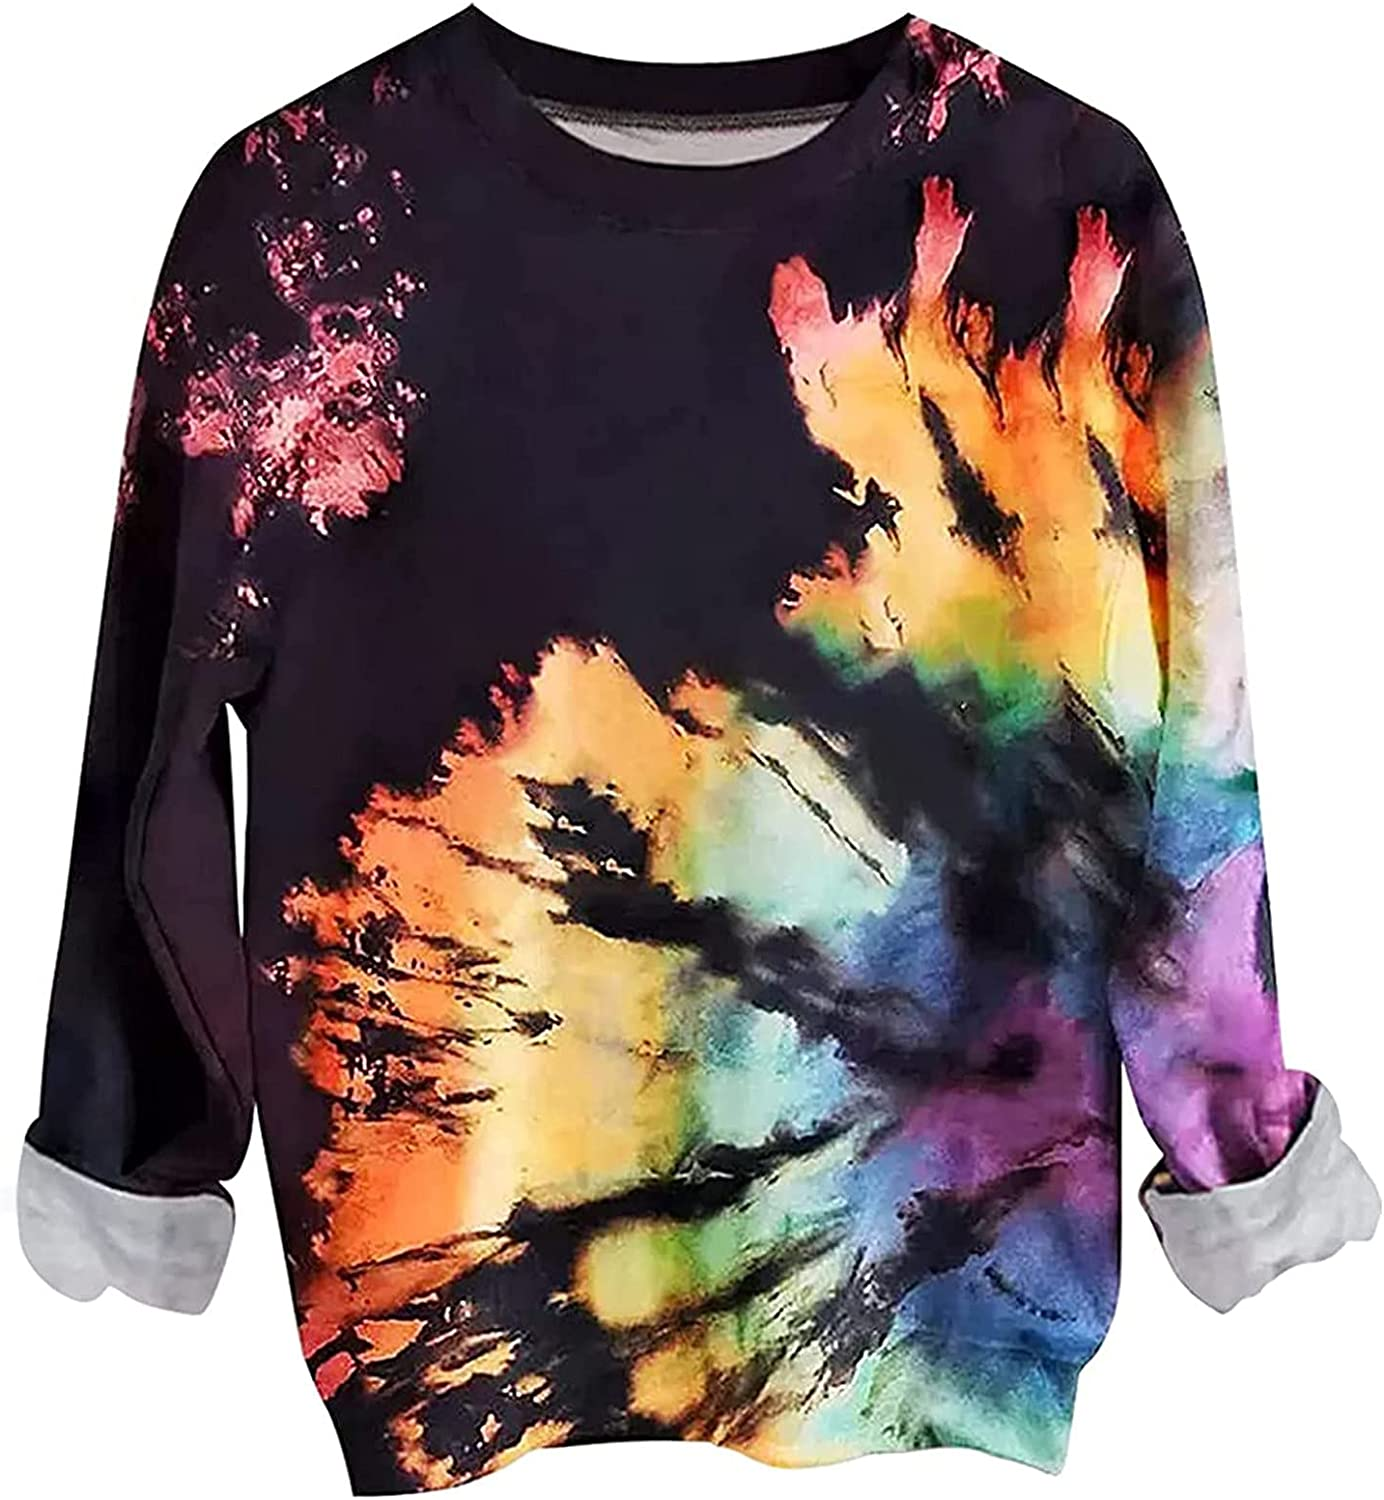 Hoodies for Women Comfy Tie Dye Print Casual Rainb Online limited product Pullover Max 60% OFF Tops